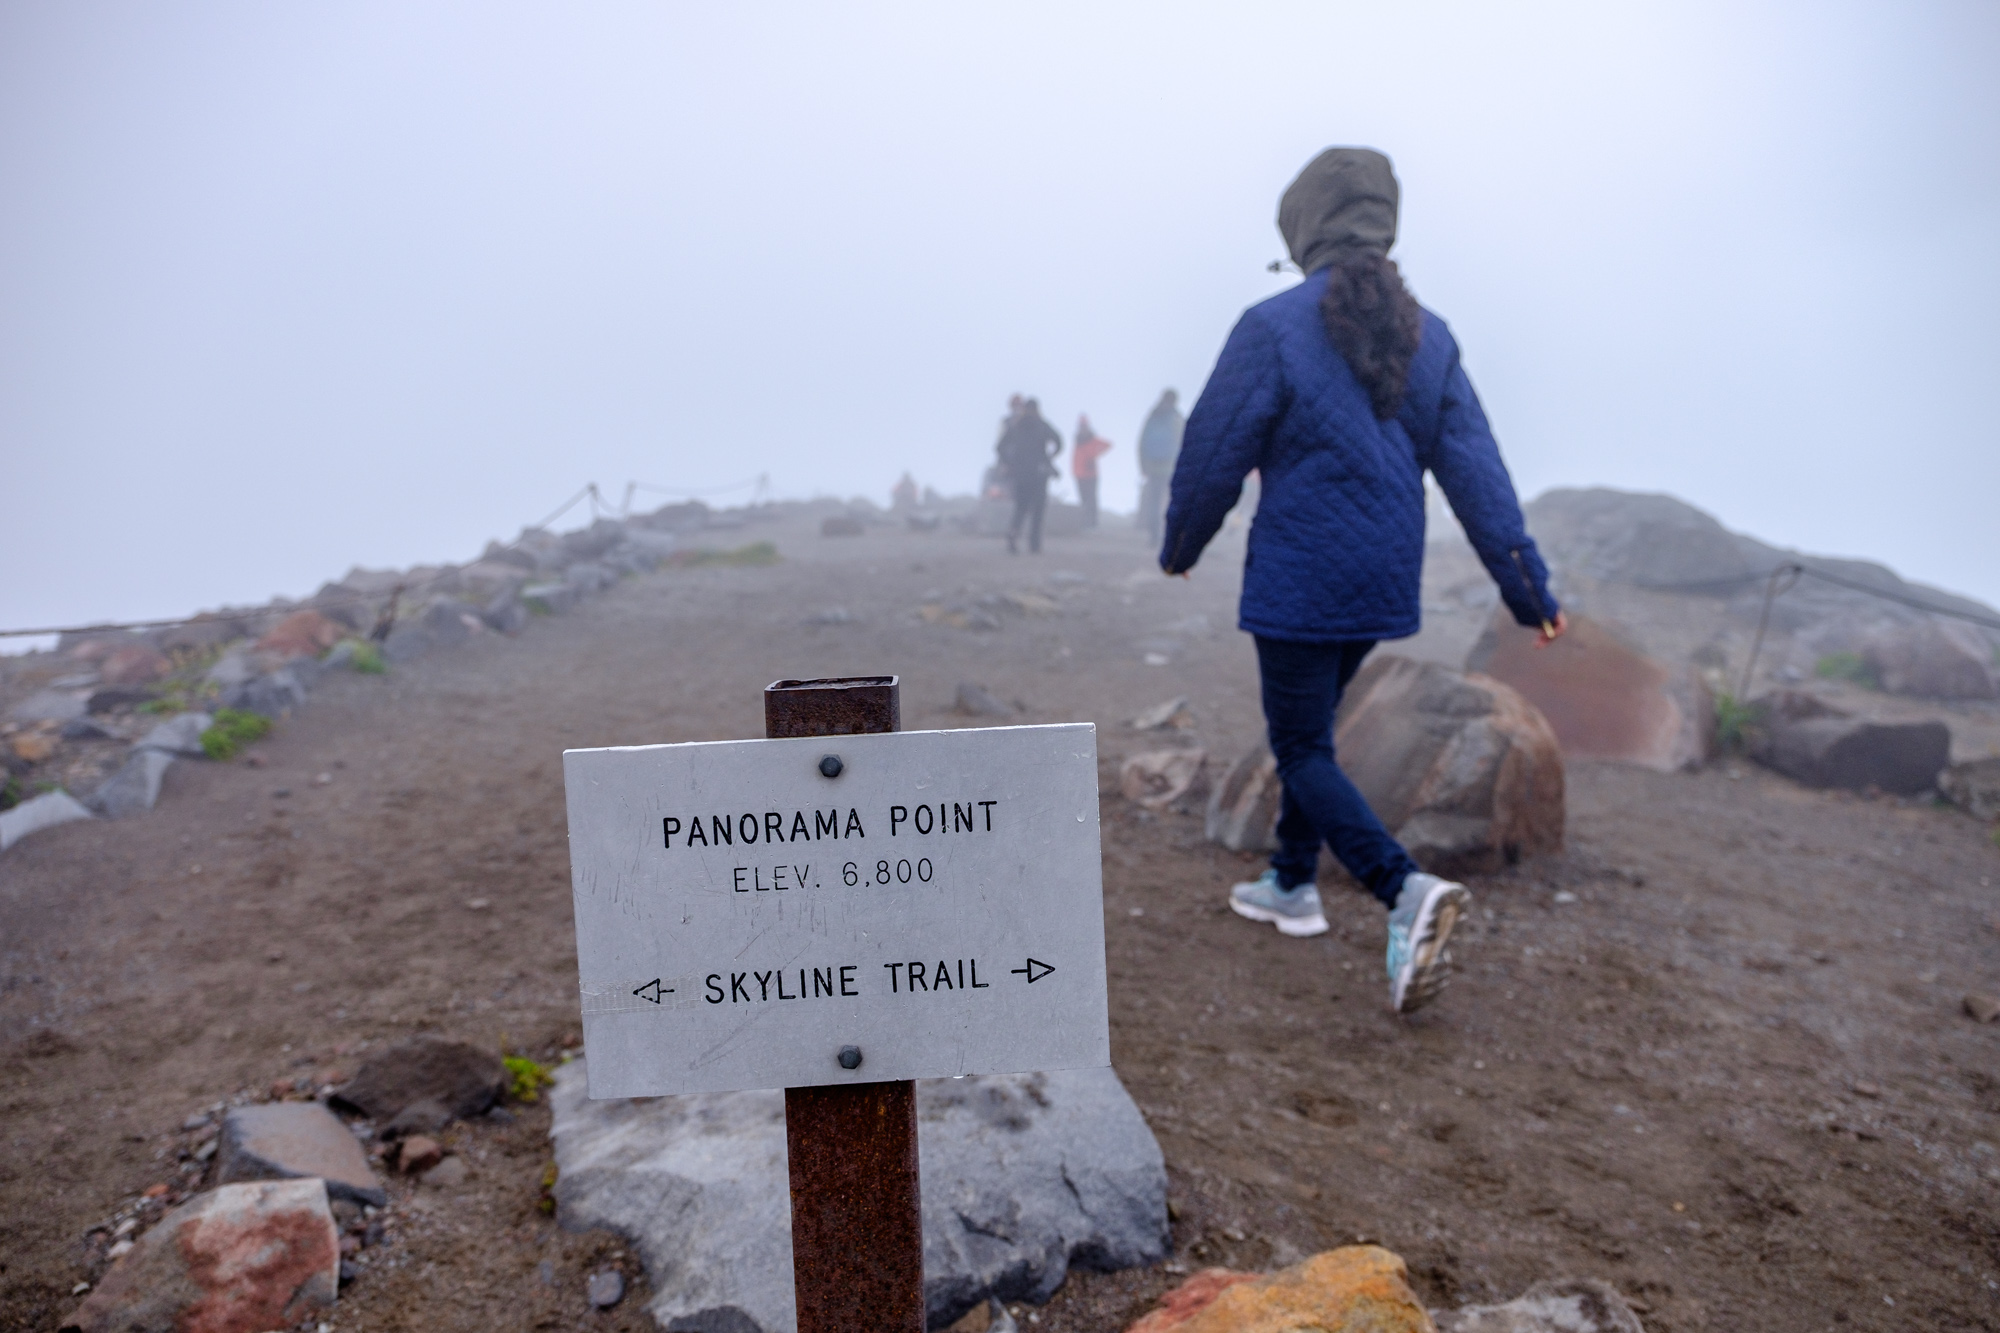 There wasn't much panorama at Panorama Point due to weather, but it was still fun to hike there.